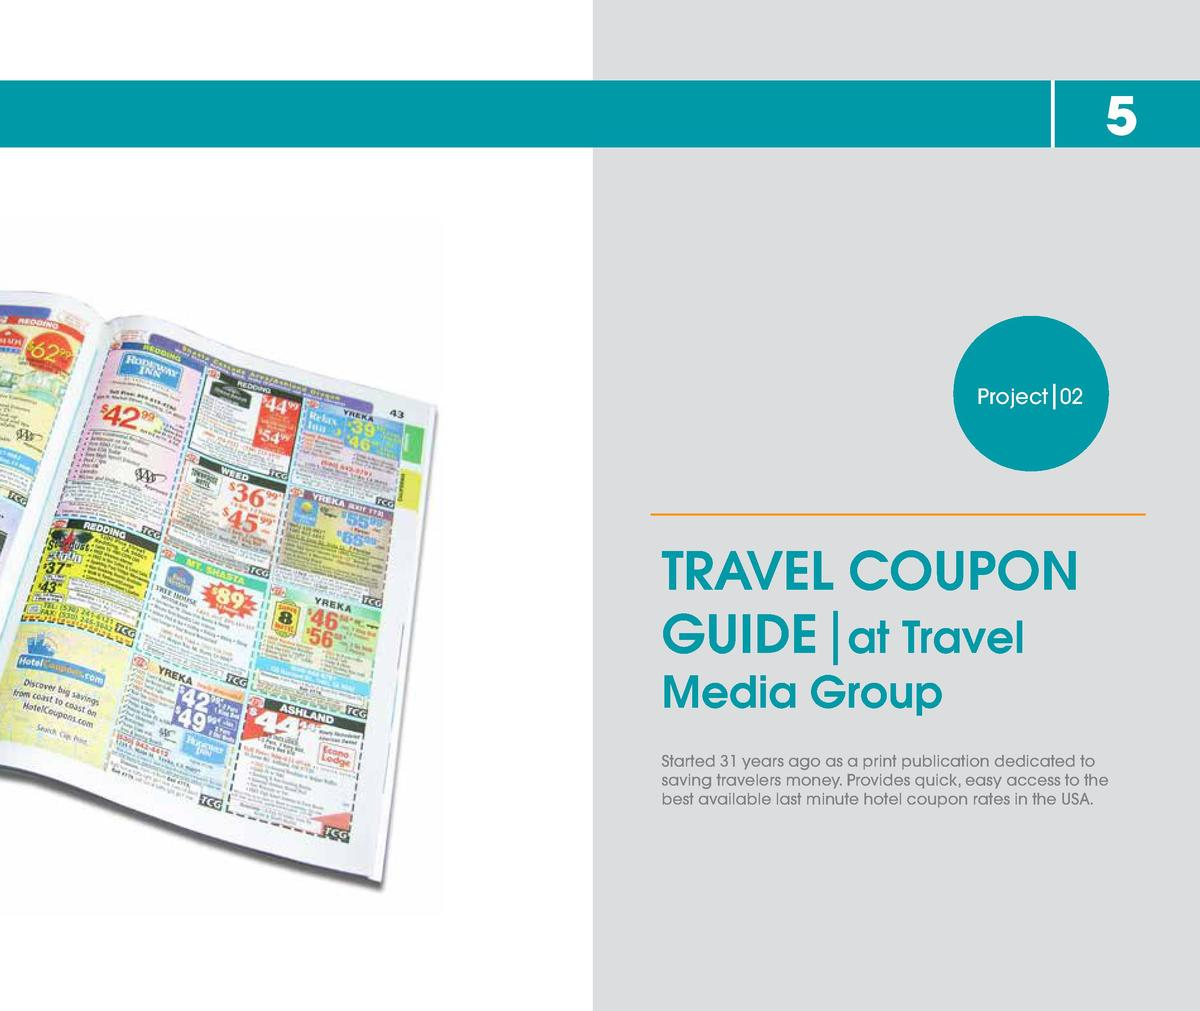 5  Project 02  TRAVEL COUPON GUIDE at Travel  Media Group  Started 31 years ago as a print publication dedicated to saving...